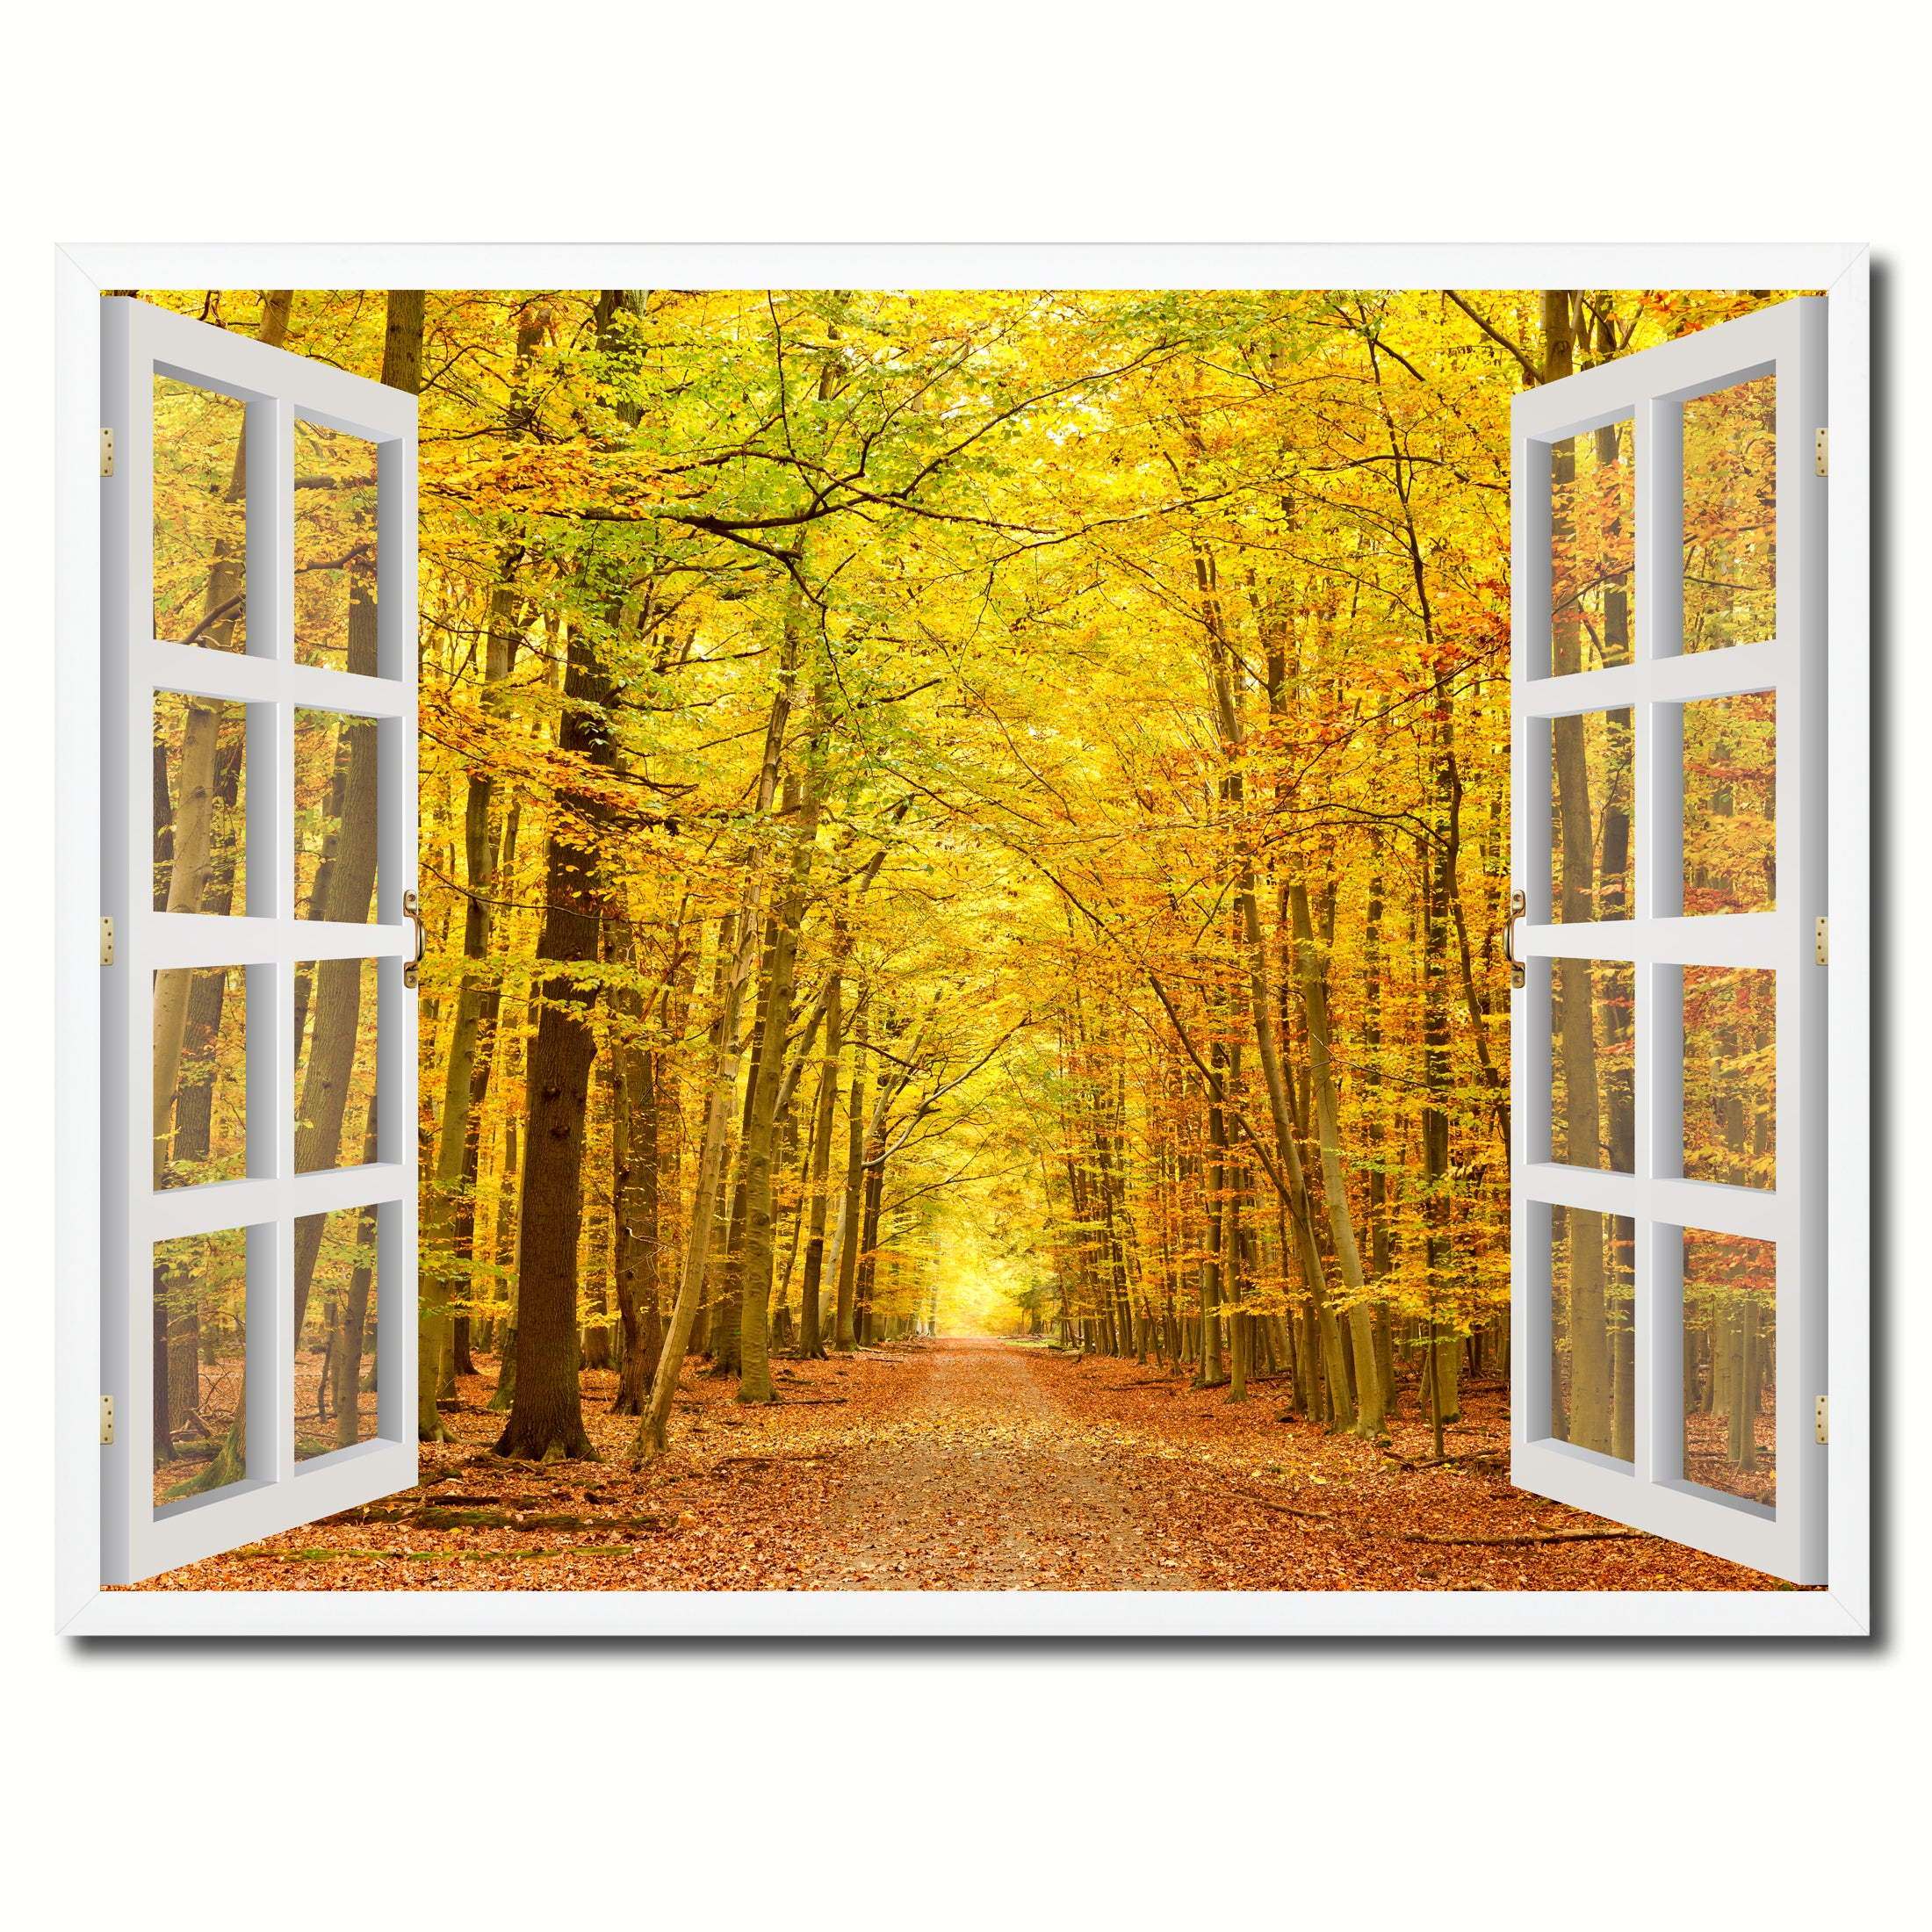 Pathway Autumn Park Yellow Leaves Picture Window Wall Art Home Decor ...